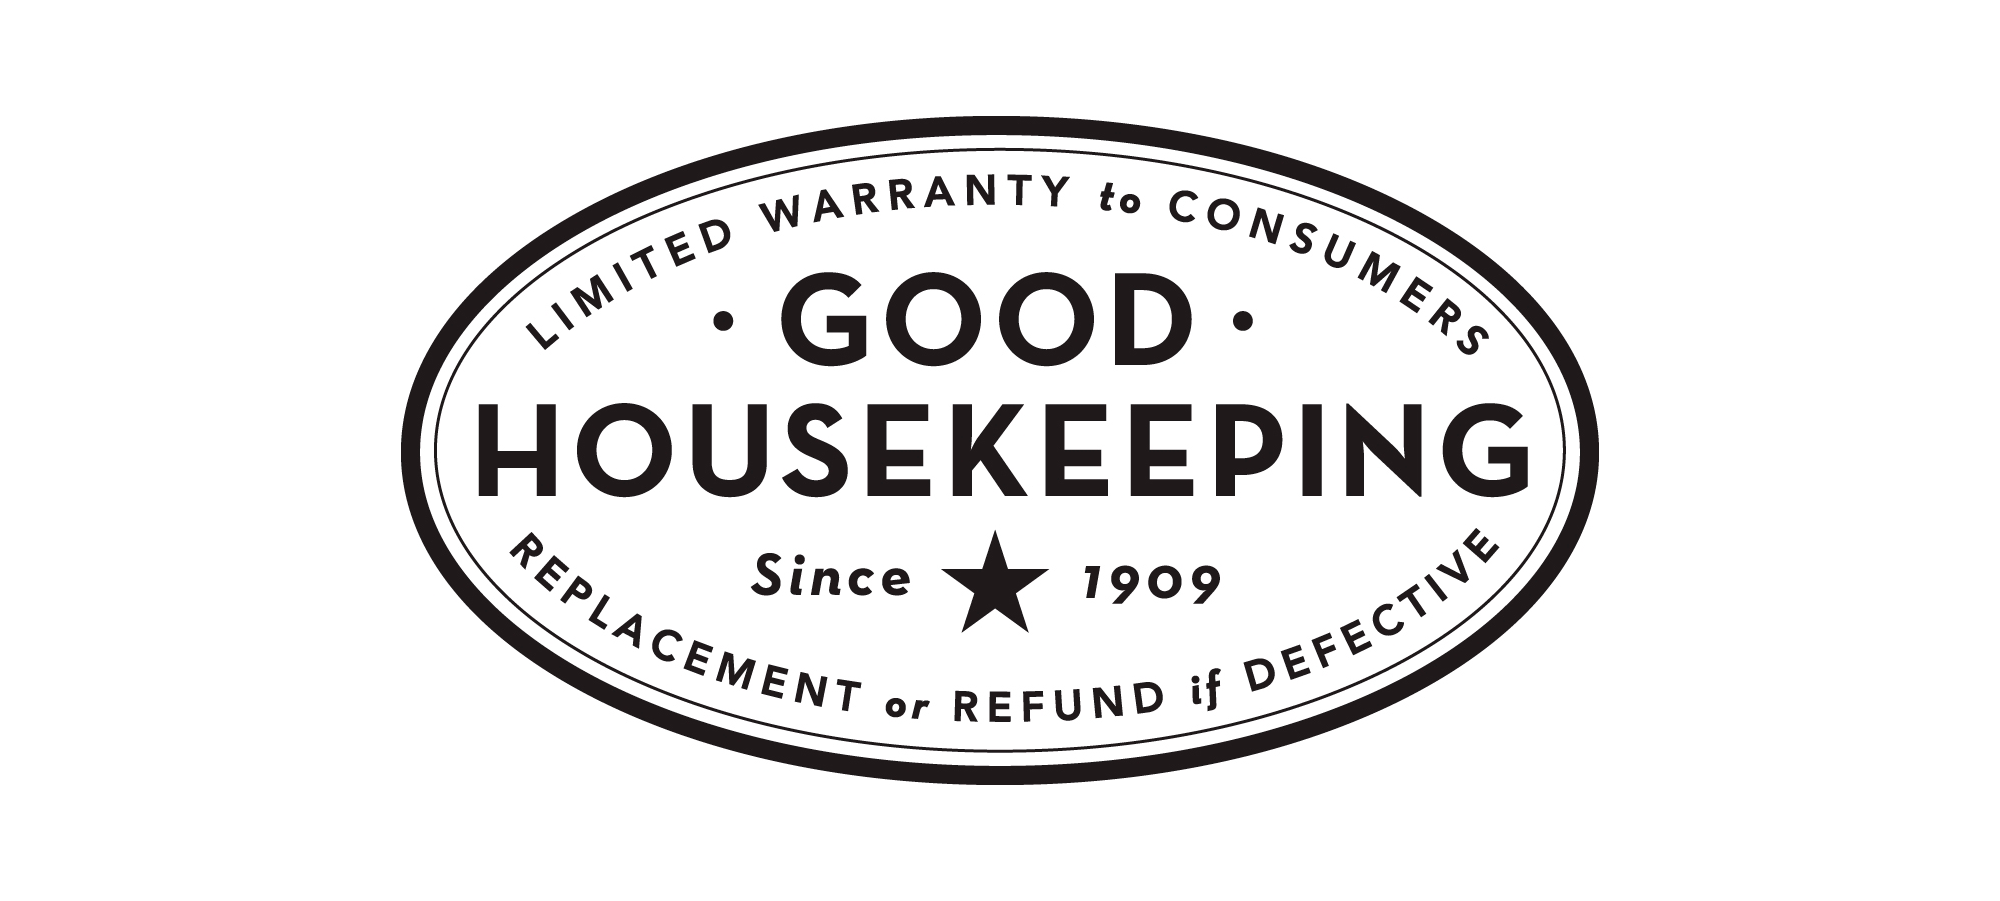 good_housekeeping_logo_5653_2000_901